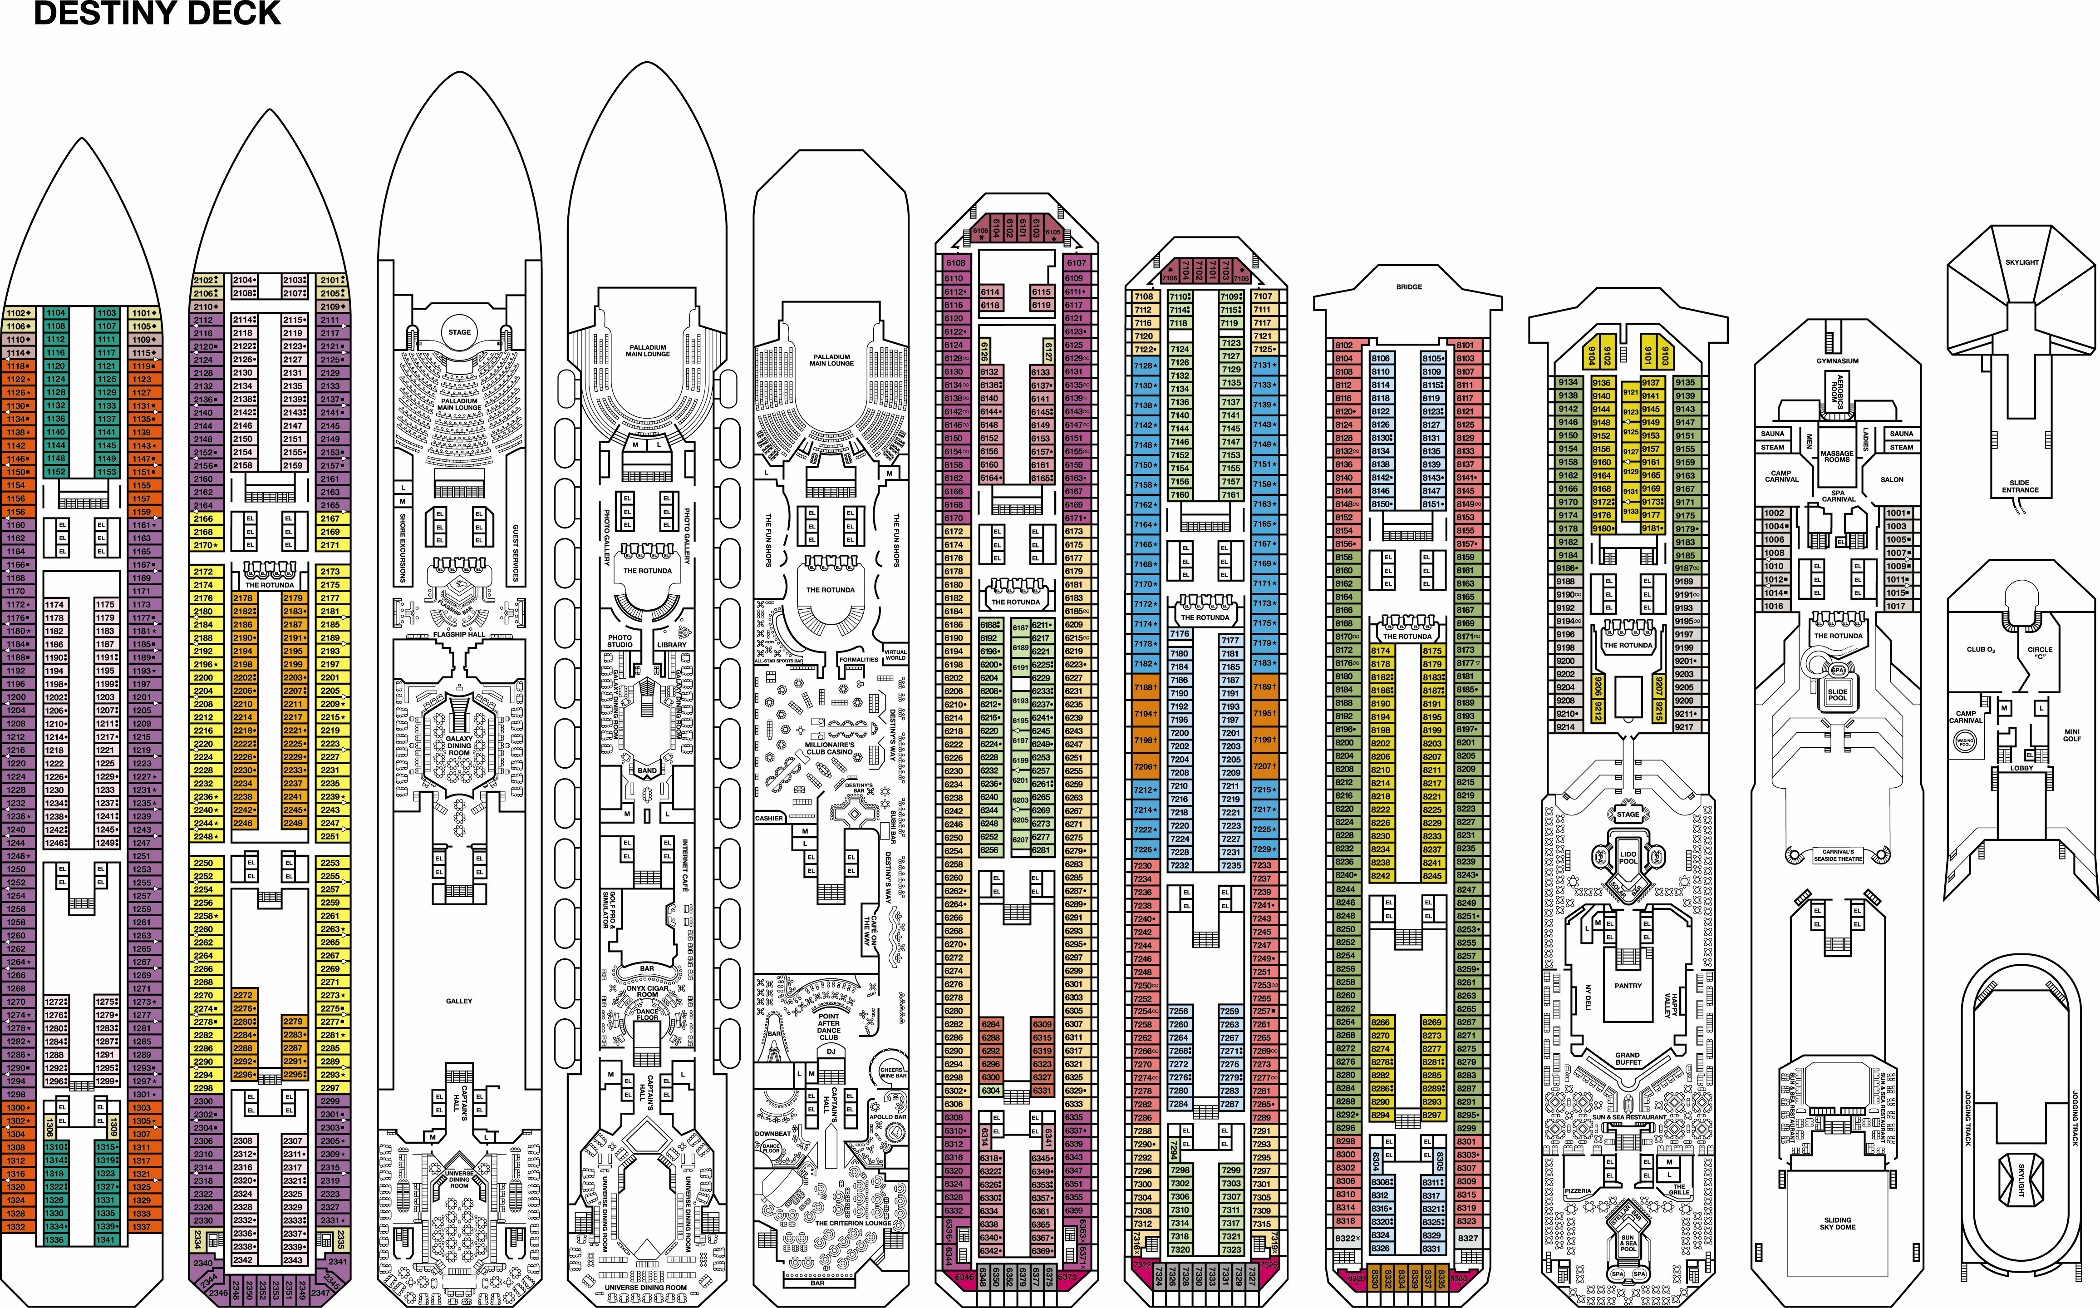 Carnival Destiny Deck Plans Page 3